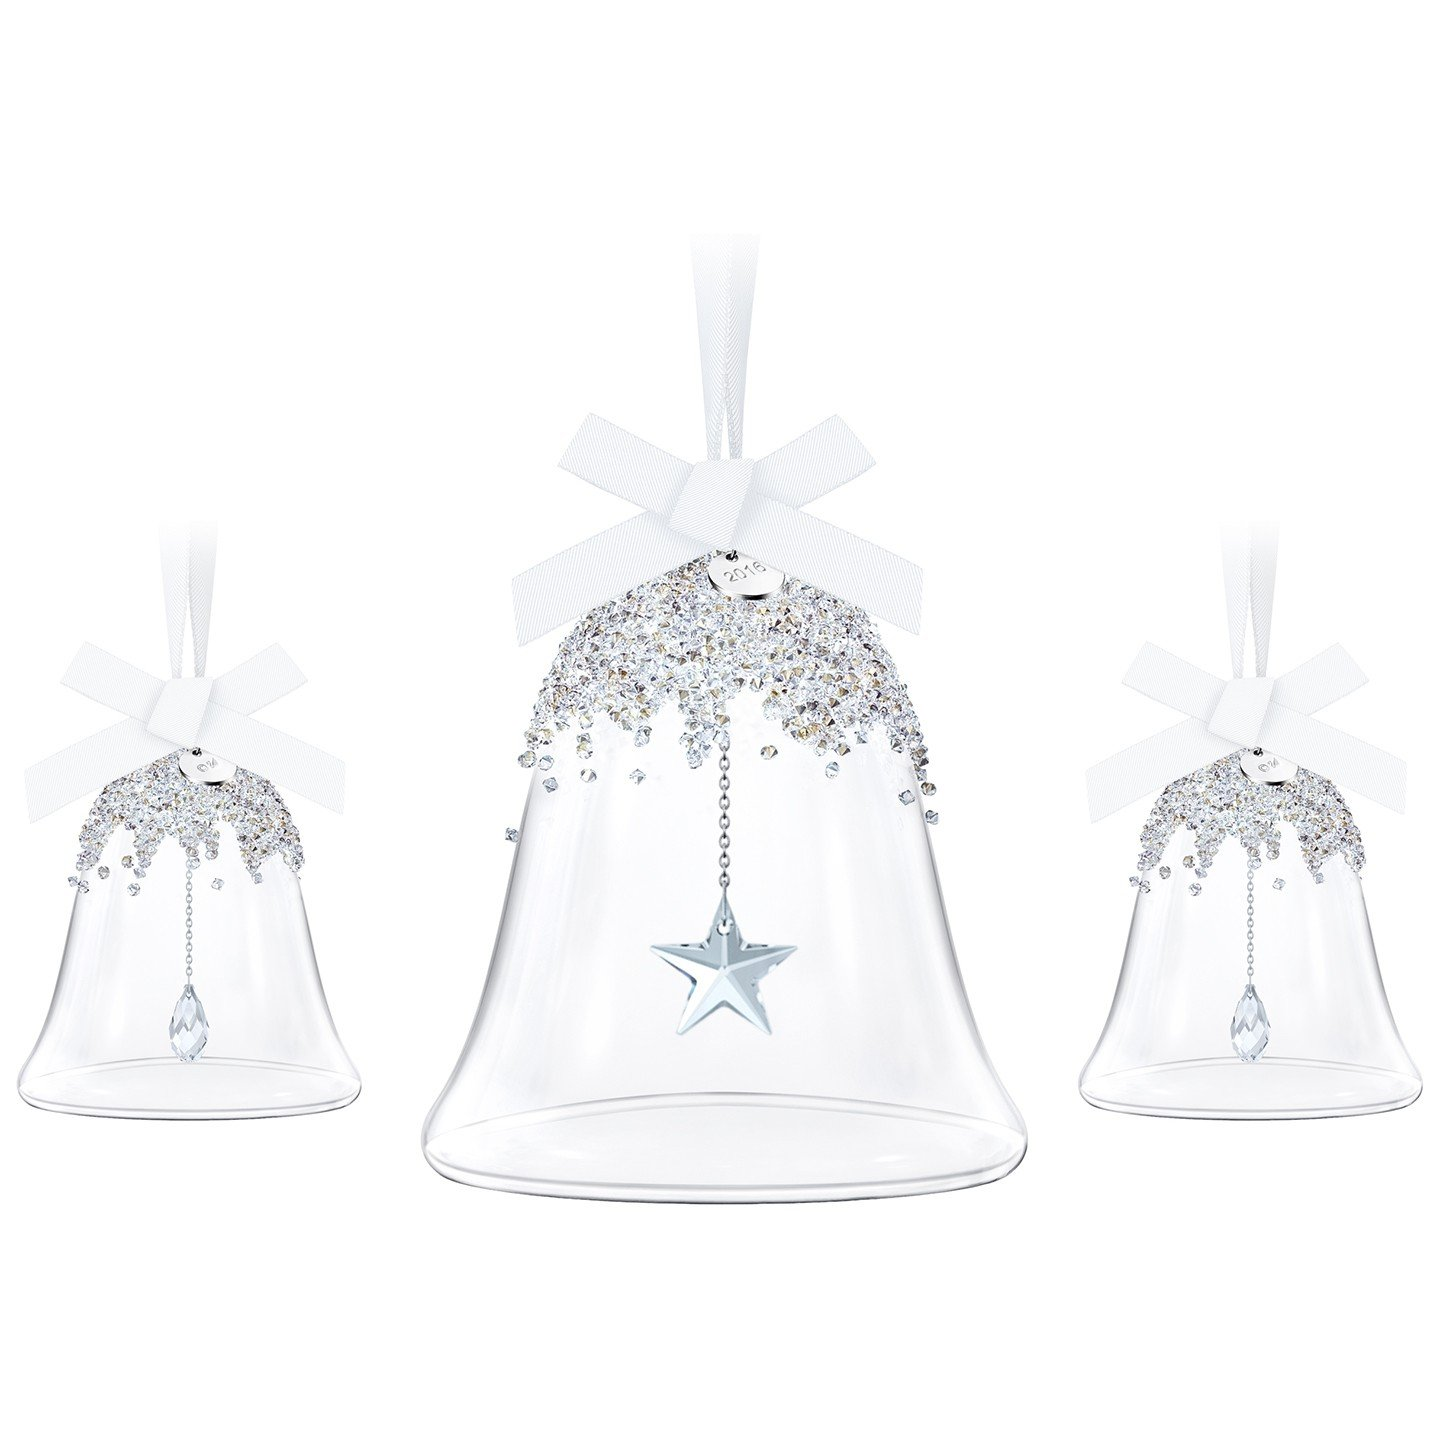 Swarovski Annual Edition 2016 Christmas Bell Ornament, 3-Piece Set 5223283